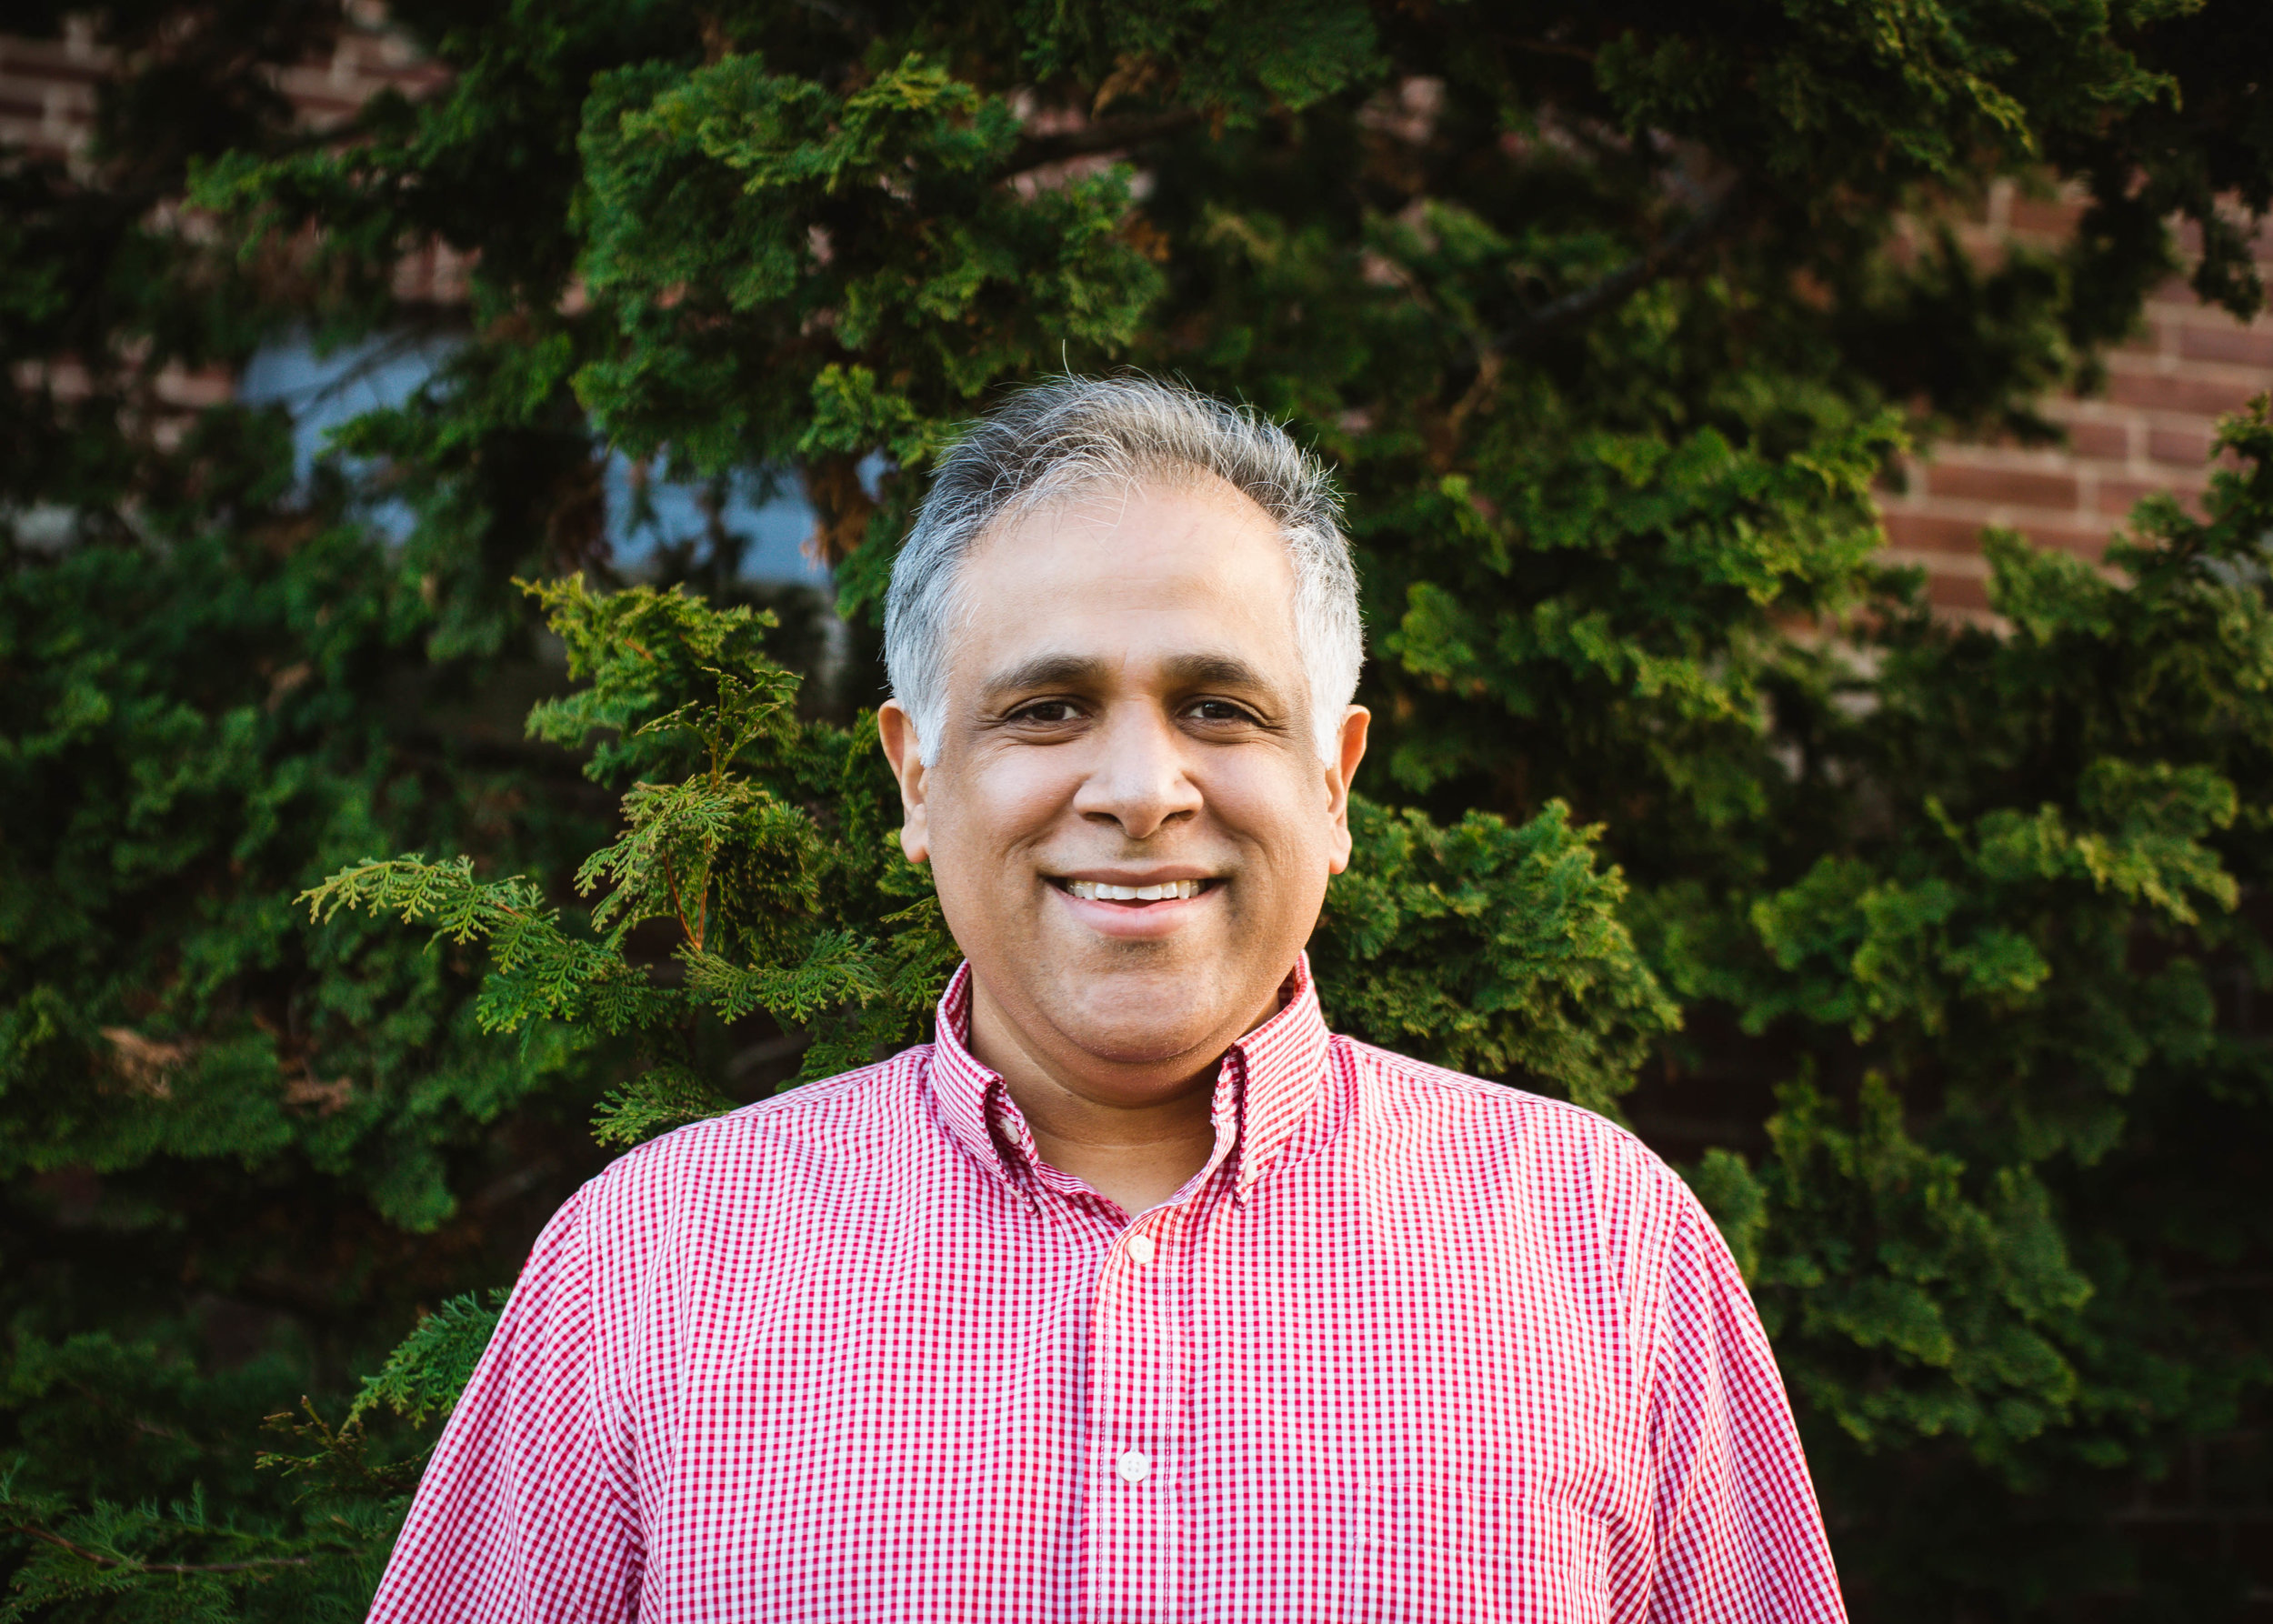 AJAY KUMAR - Hey, my name is Ajay I have been Associate Pastor of New Hope since 2000 and a member since 1995. I love being at New Hope because I love the opportunity to display hospitality to those in our community on a weekly basis. My wife Loukia and I have 2 kids, Sophia and Lucas. I am originally from India and my wife is Greek. I grew up Hindu and came to faith in Jesus as a teen, in India. I came to the U.S. in 1991 as an International student. I enjoy stamp collecting.